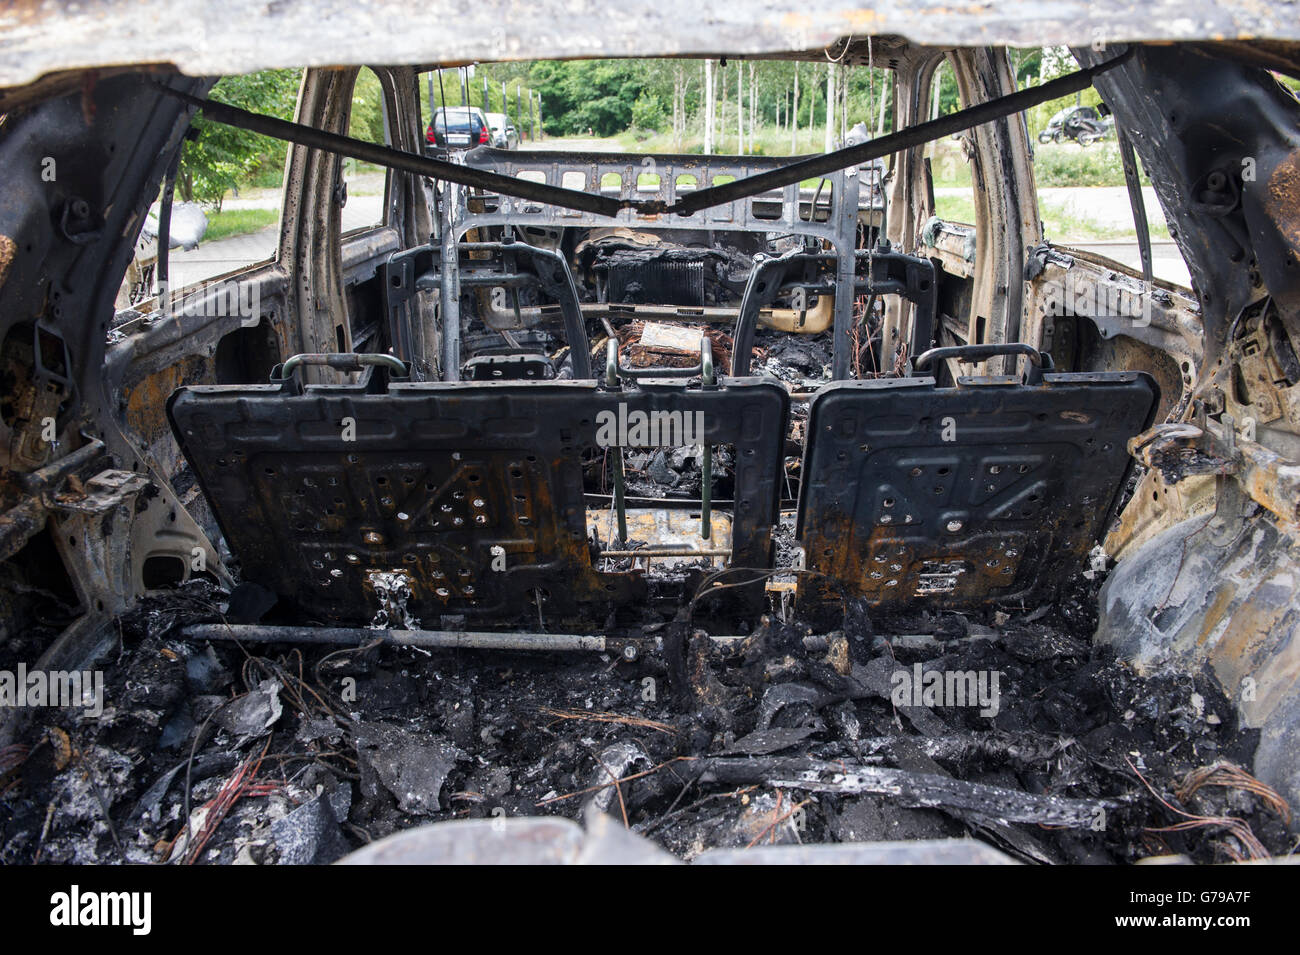 Unidentified Police Car Stock Photos Metal Motorsports Wiring Harness Berlin Germany 26th June 2016 Harnesses Heating Coils And Charred